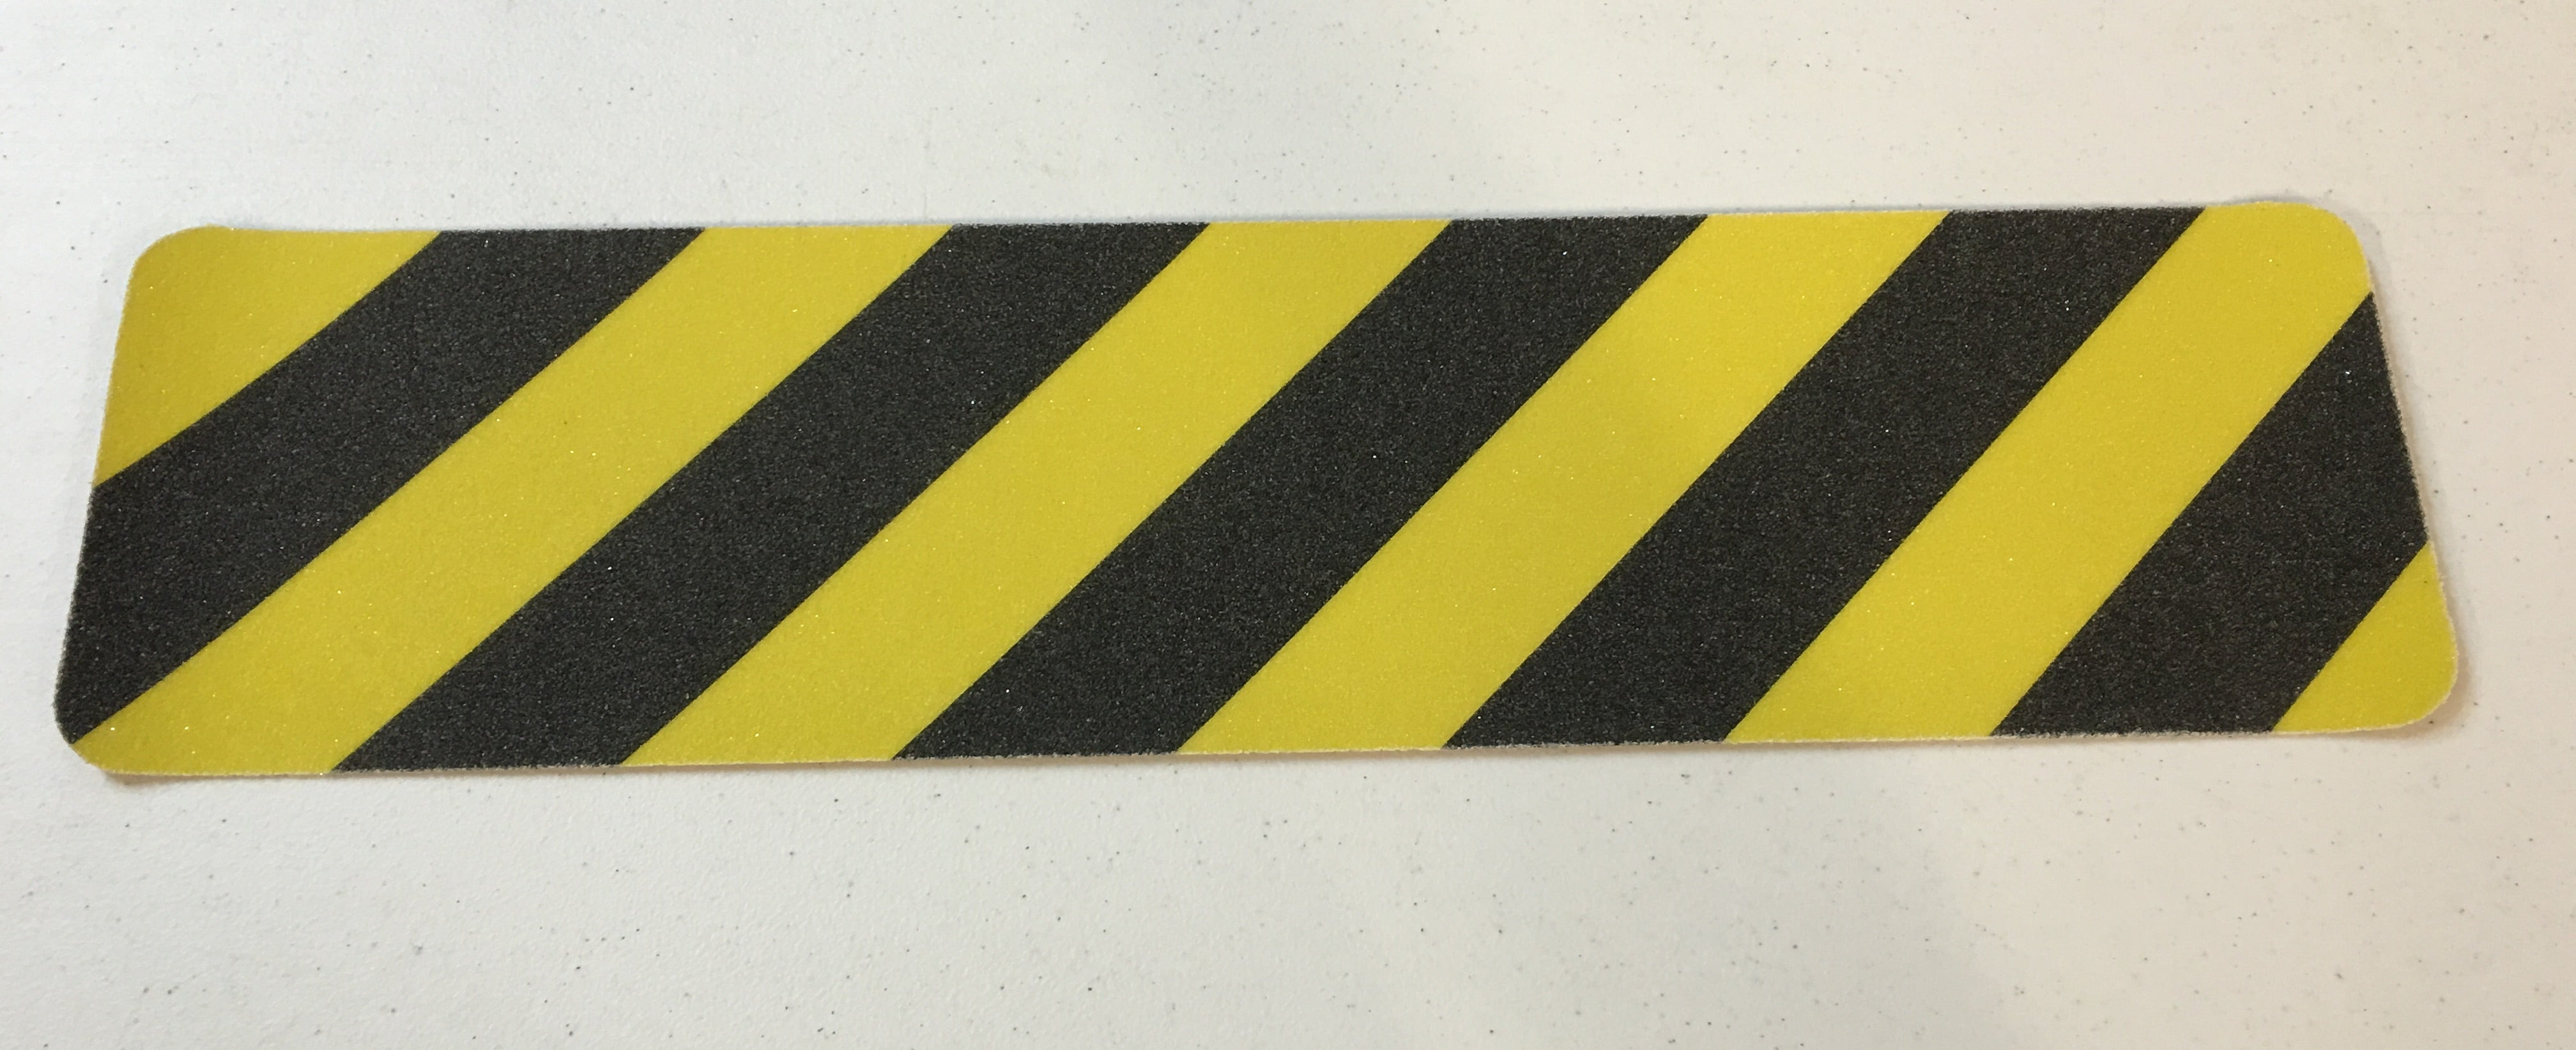 "3"" X 24"" Tread BLACK YELLOW STRIPED Abrasive Tape - Pack of 100"